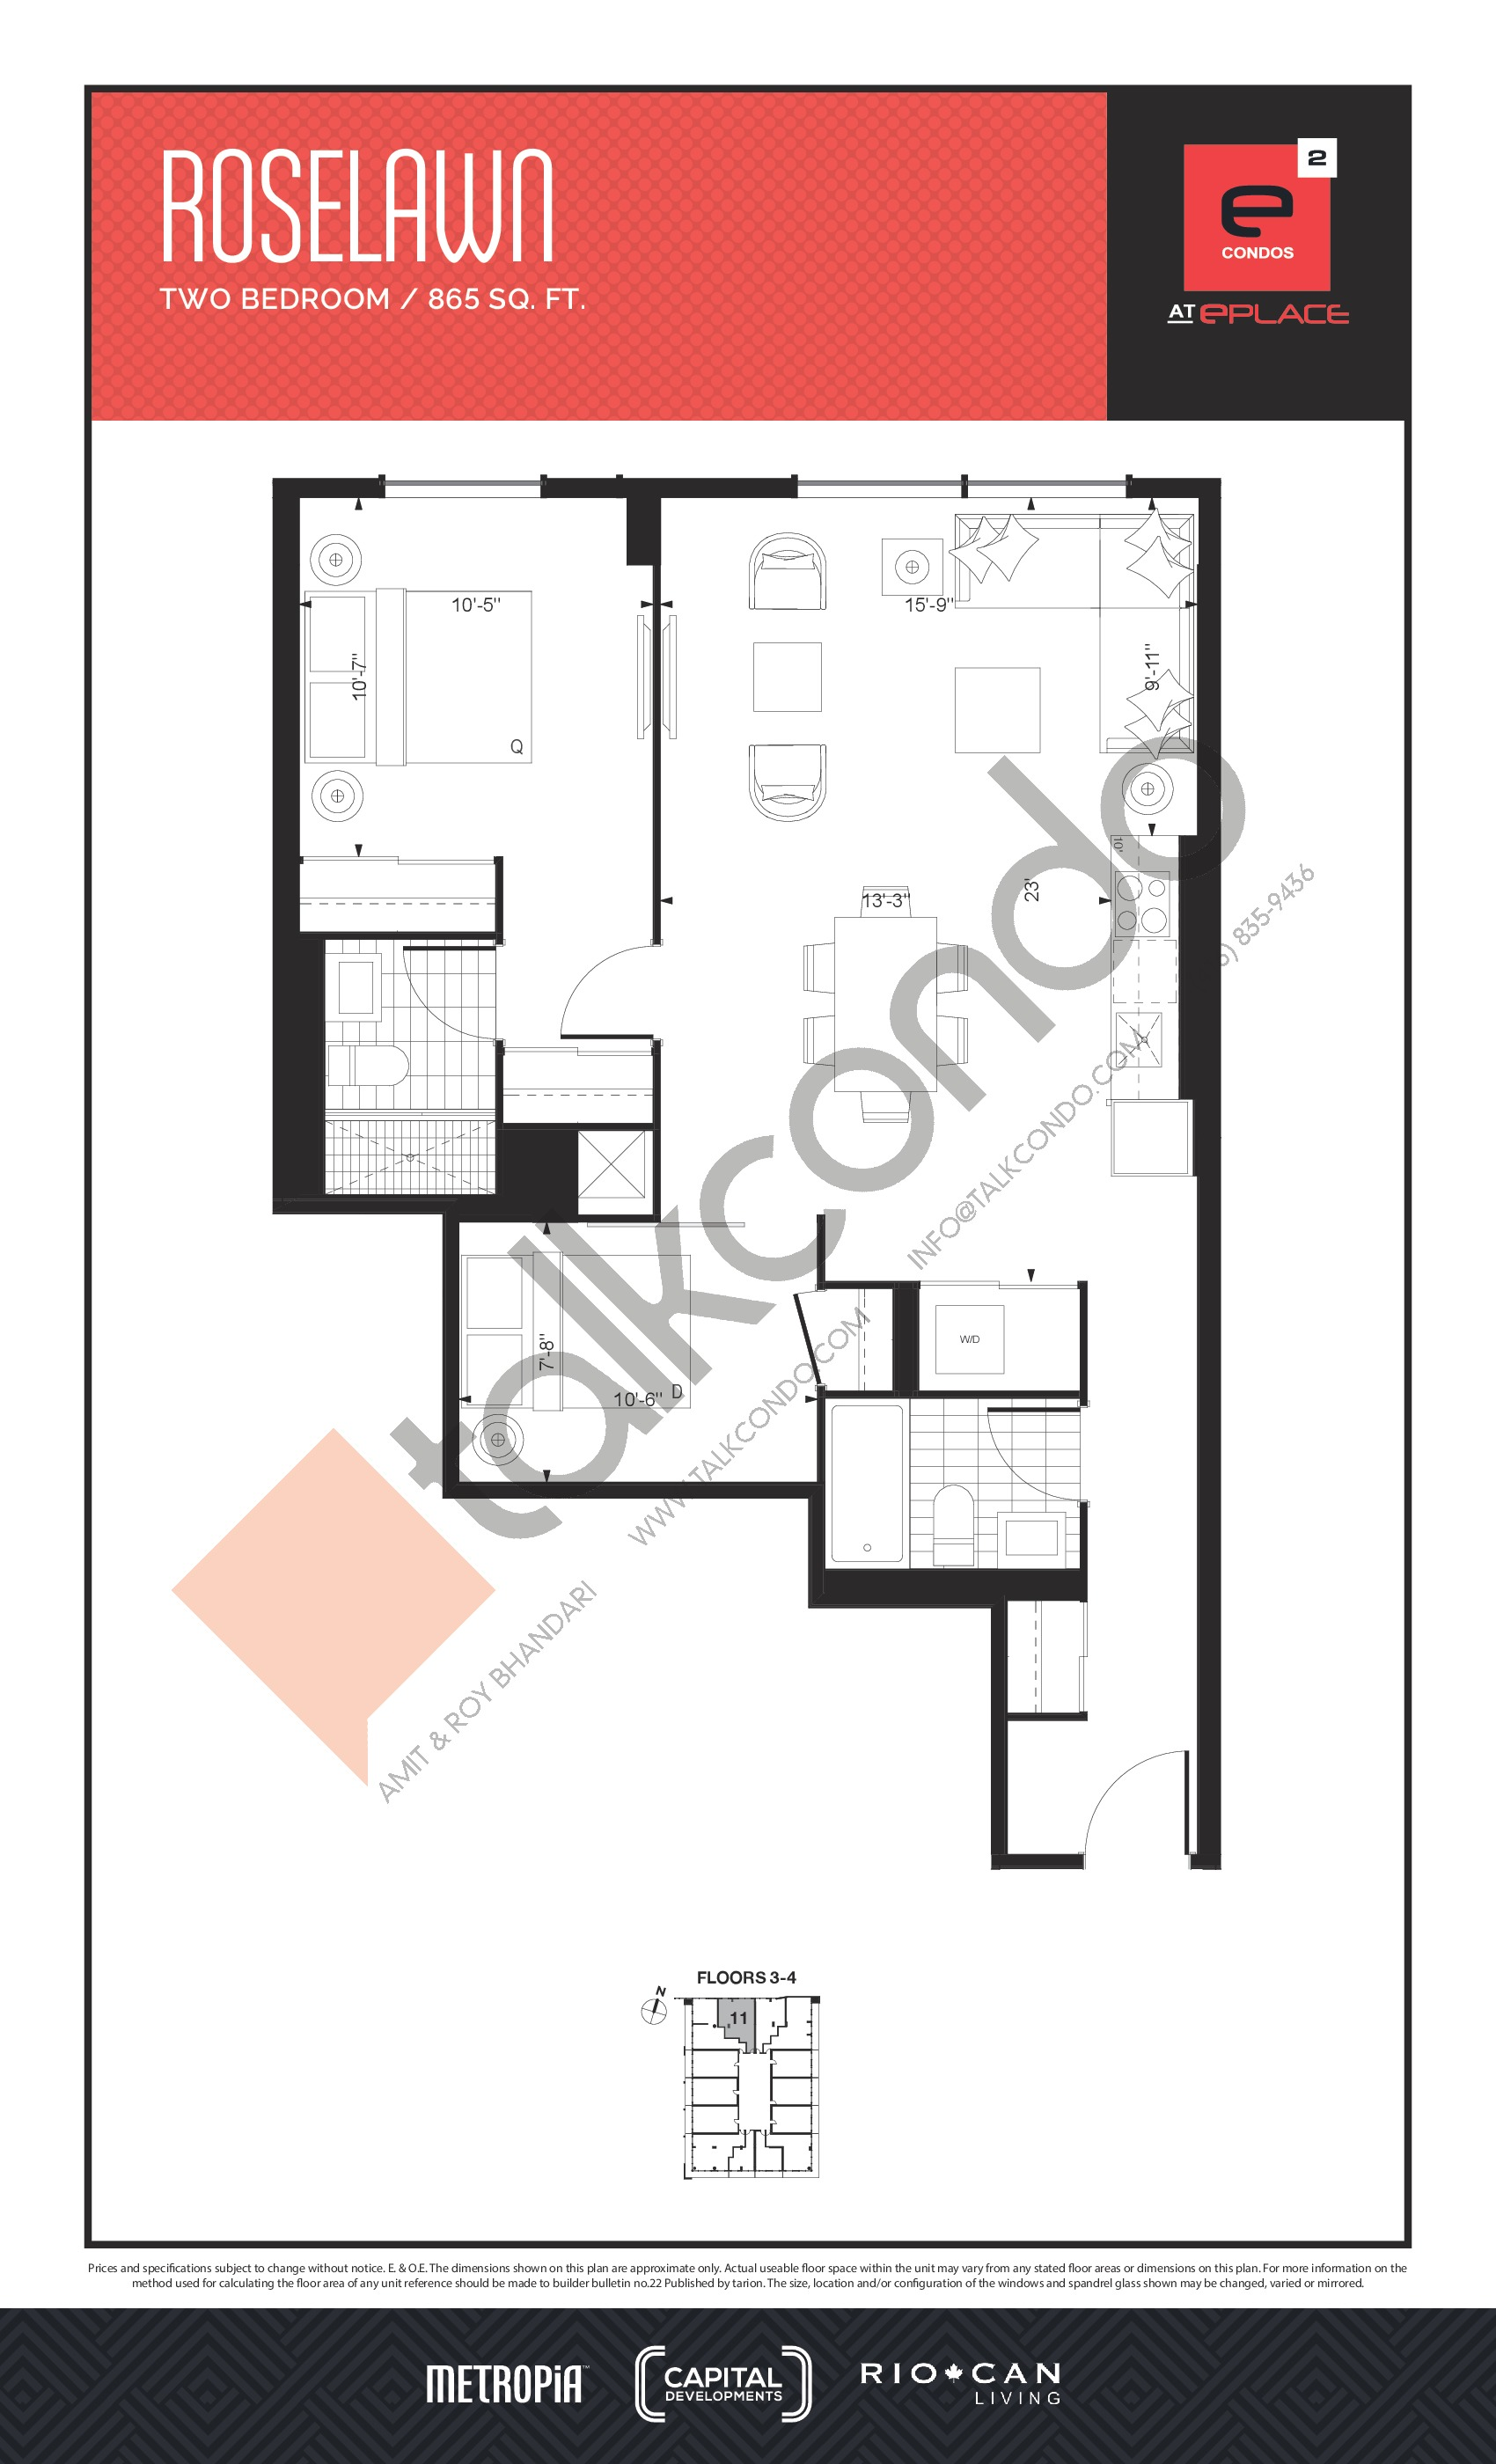 Roselawn Floor Plan at E2 Condos - 865 sq.ft